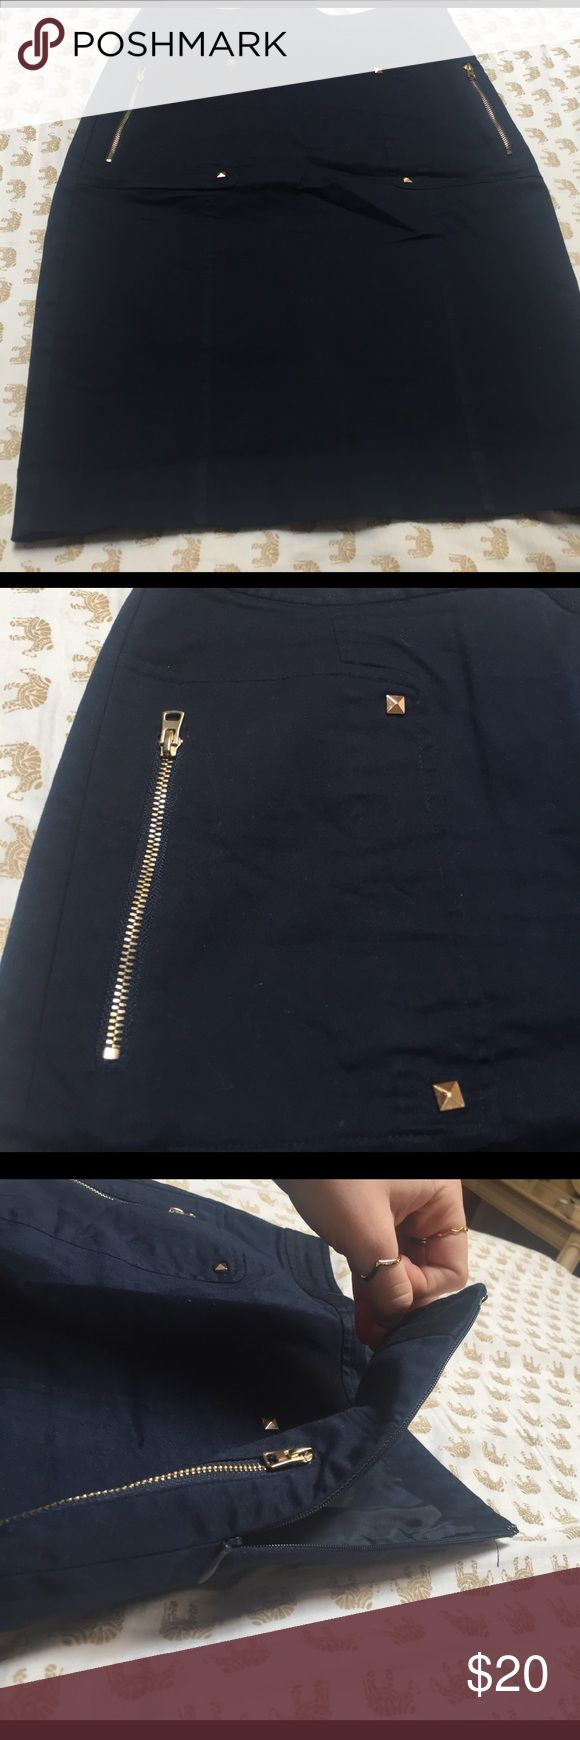 Navy blue pencil skirt Pencil skirt with side closure and gold accents Skirts Pencil